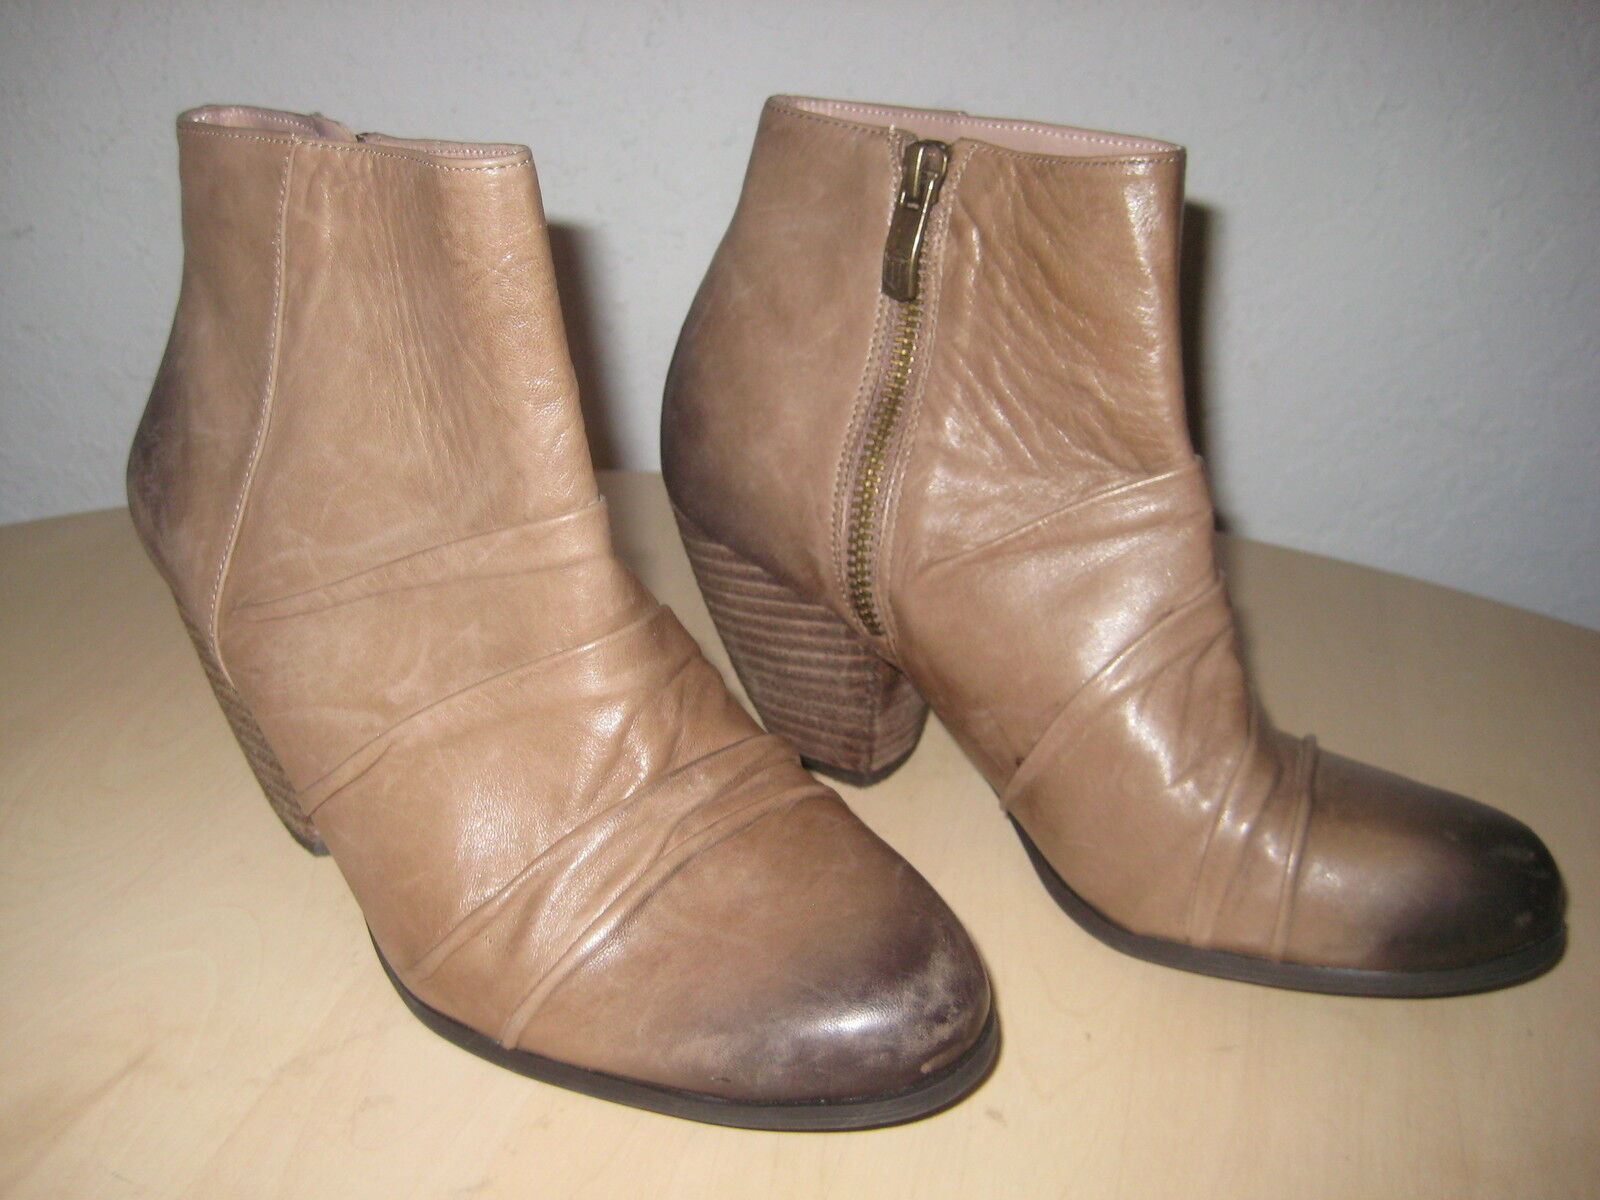 Vince Camuto shoes Size 5.5 M Womens New Handella Mochaccino Leather Ankle Boots